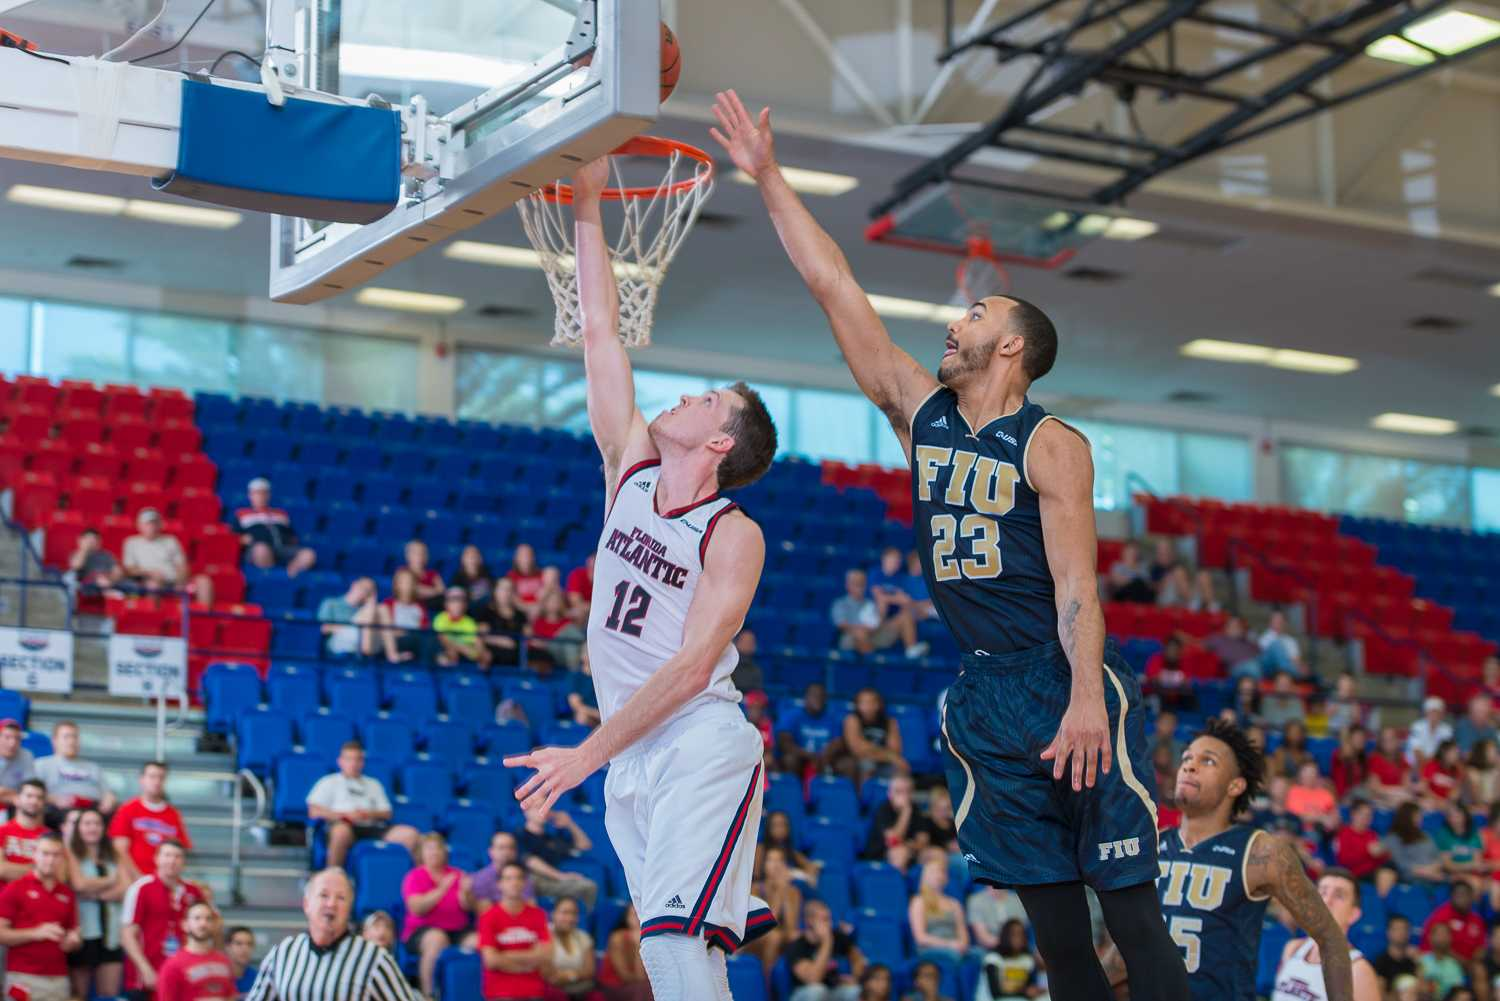 Guard Jackson Trapp (12) scores a layup in the tenth minute of the first half to narrow FIU's lead to six, 10-16.